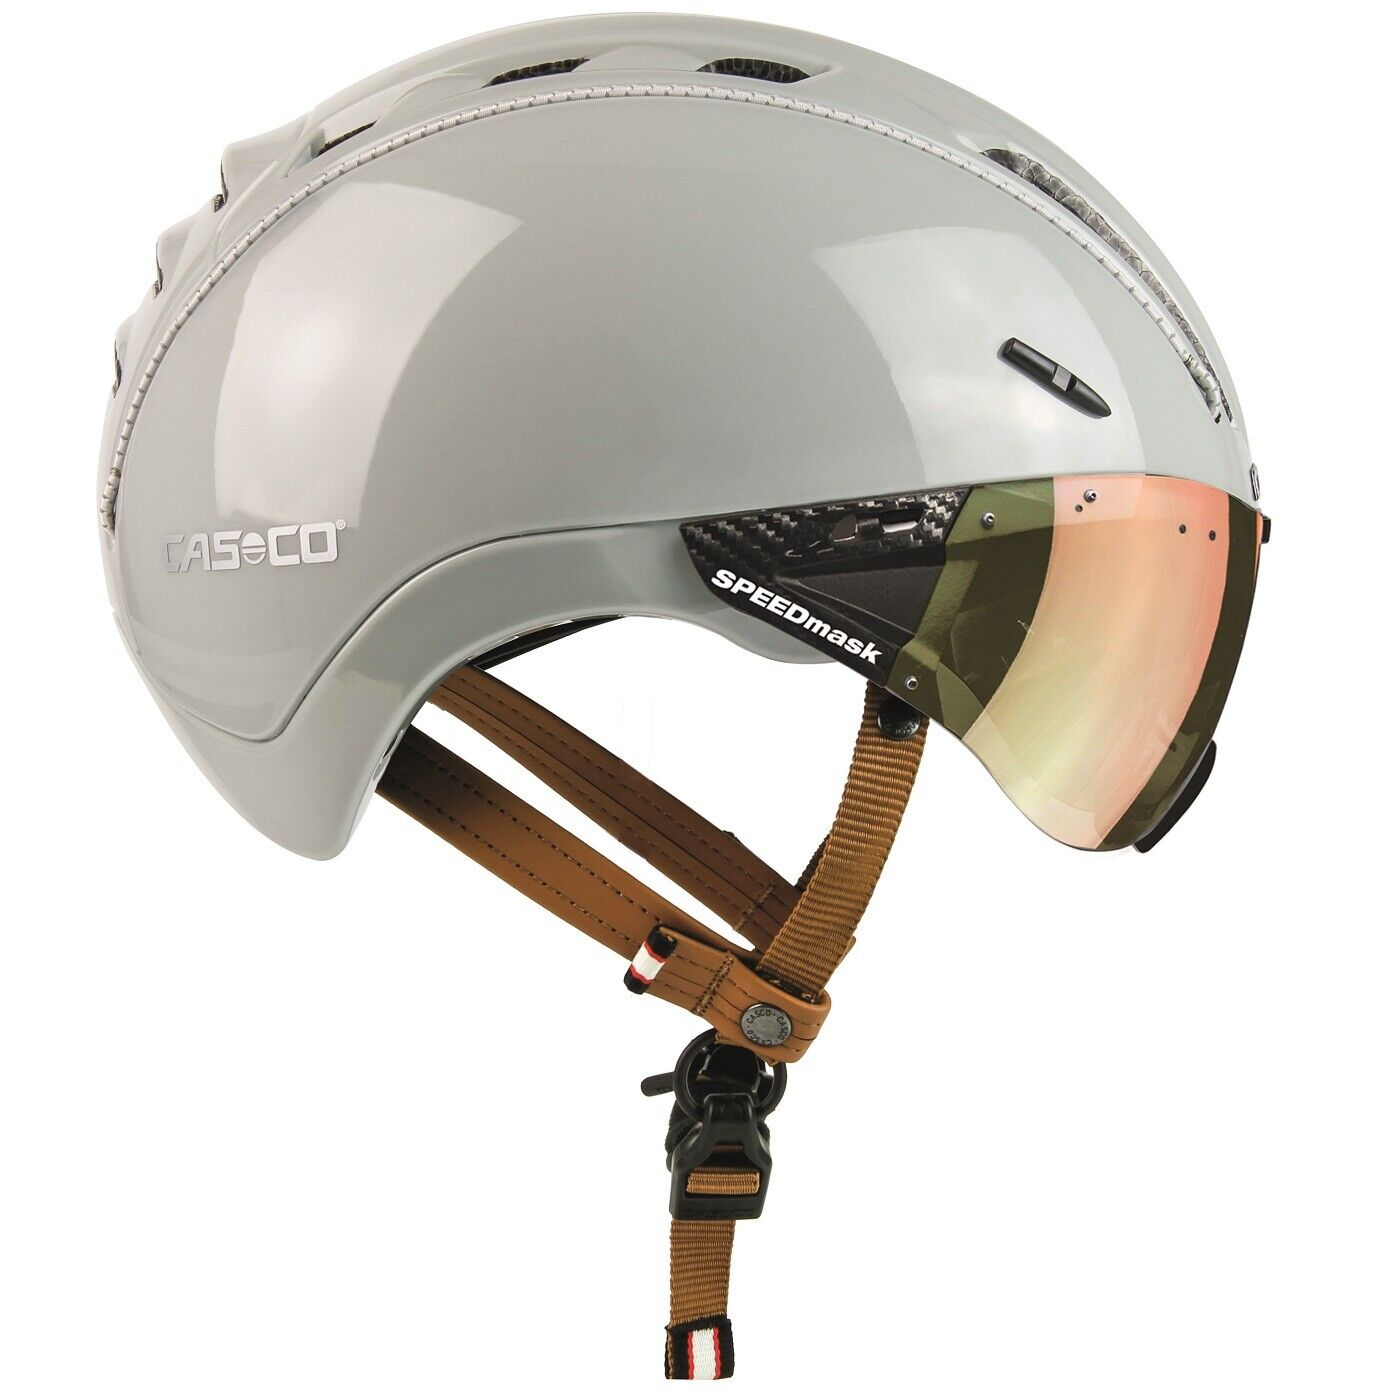 Casco Roadster Plus Fahrradhelm Herren, Damen e-Bike Helm